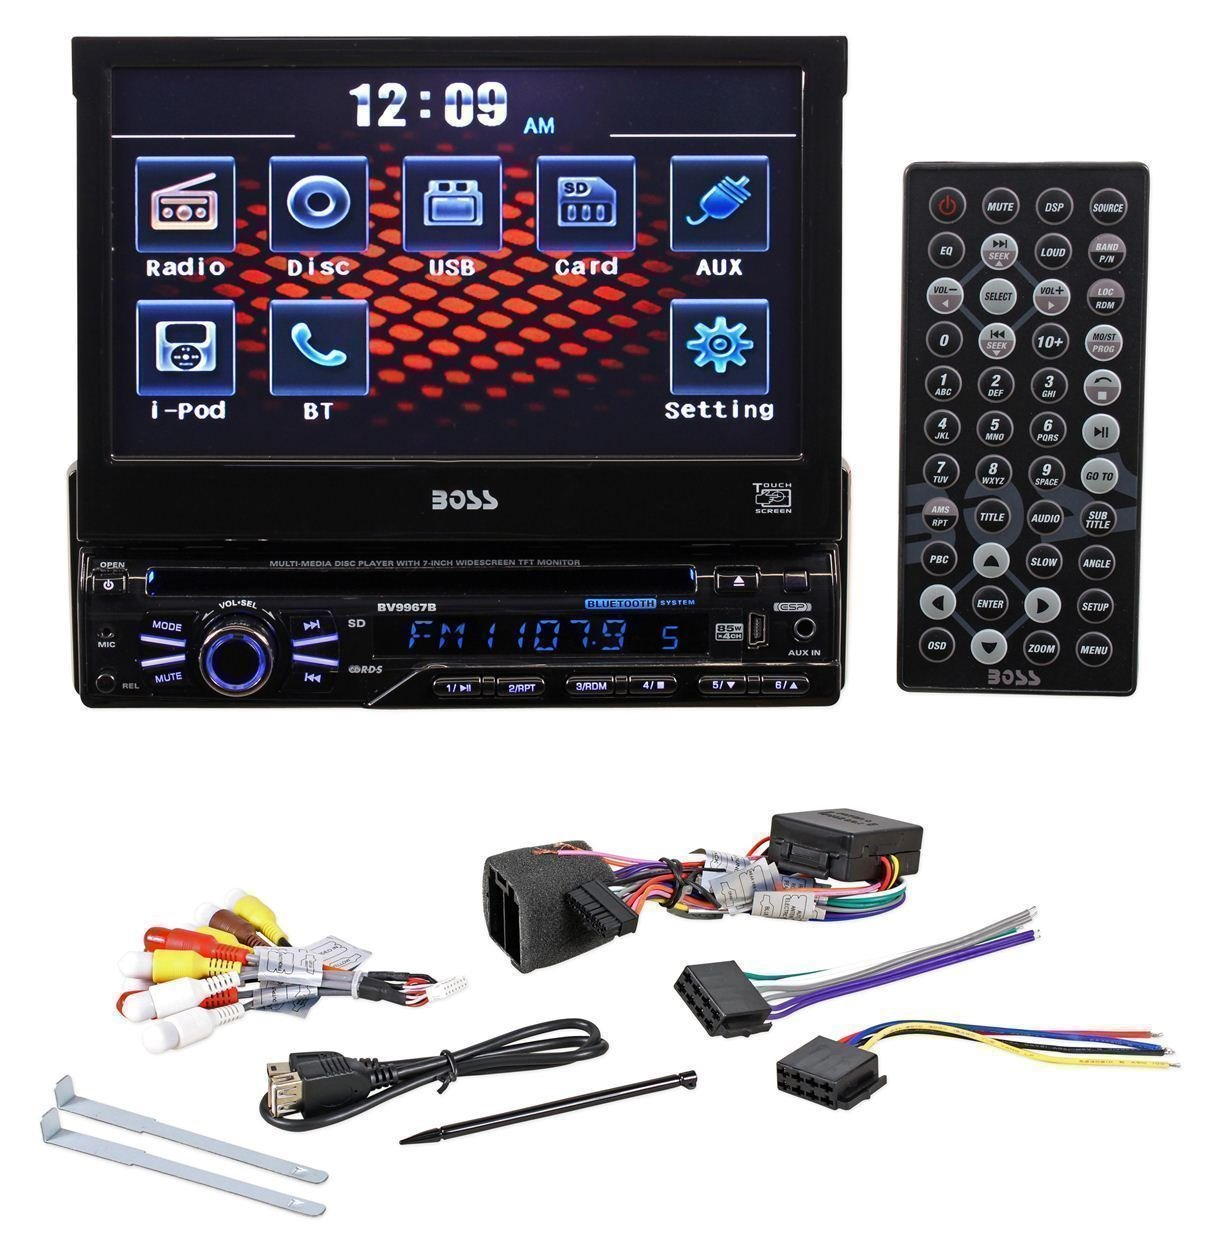 Boss In-Dash 7'' Touchscreen TFT-LCD Car Flip-Up Monitor with Bluetooth, Front Mini-USB and 3.5mm Aux Input